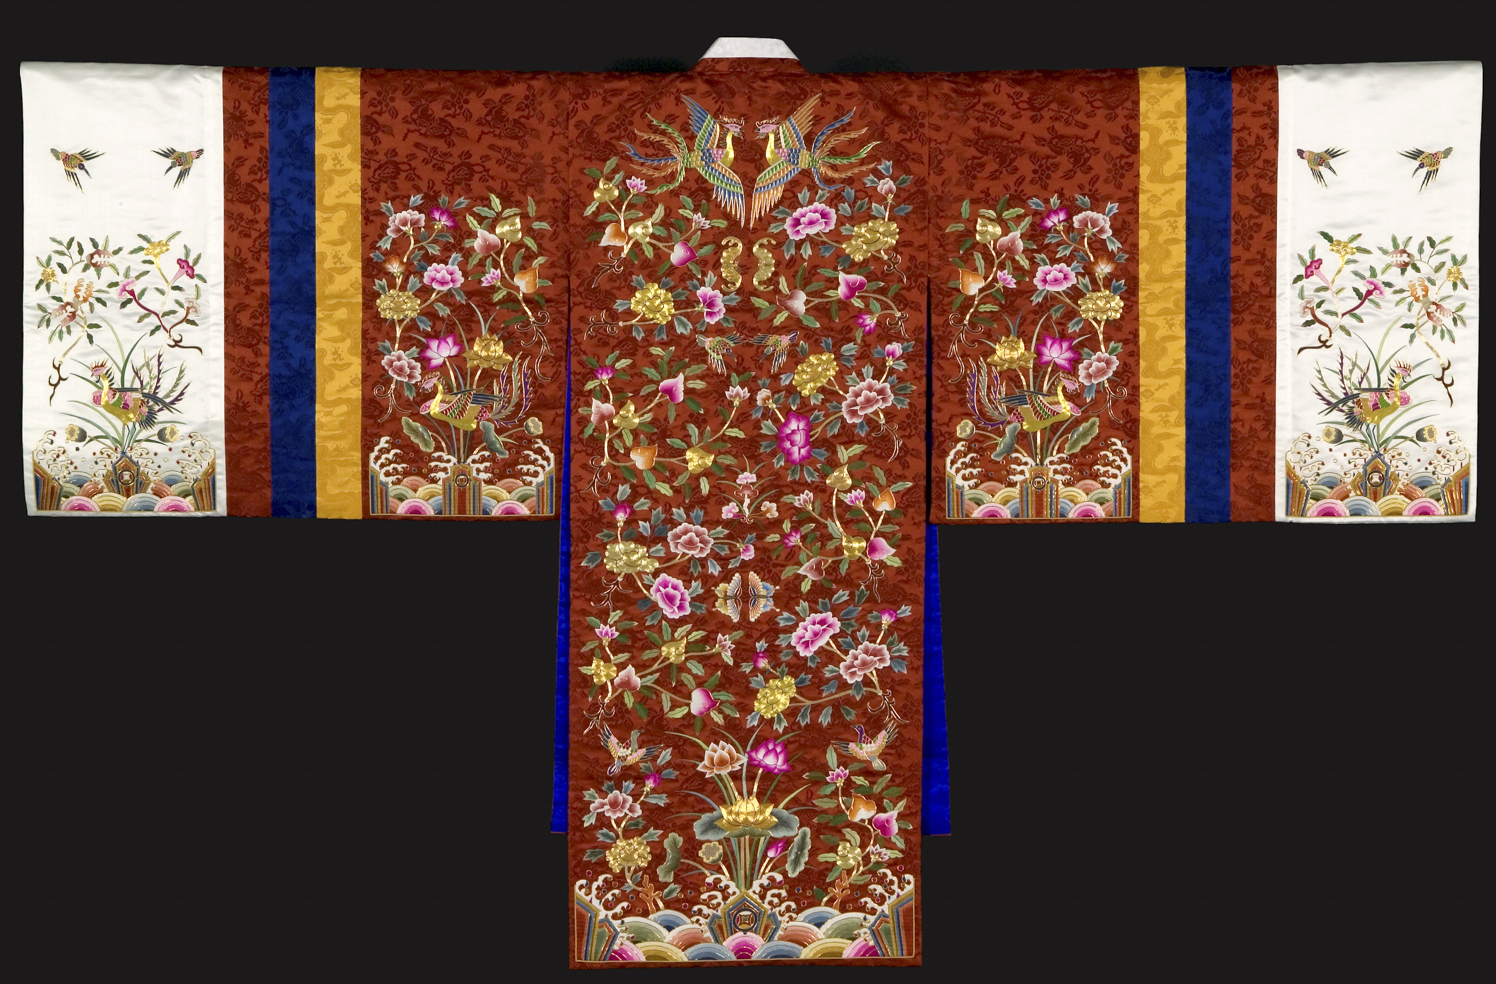 Bridal robe, 2002, by Han Sang-soo (Korean, b. 1934). Silk embroidered with silk and goldthread.  Courtesy of Asian Art Museum of San Francisco, Acquisition made possible by David andMargo Buchanan, 2005.65.a-.b. © Han Sang-soo. Photograph © Asian Art Museum of San Francisco.